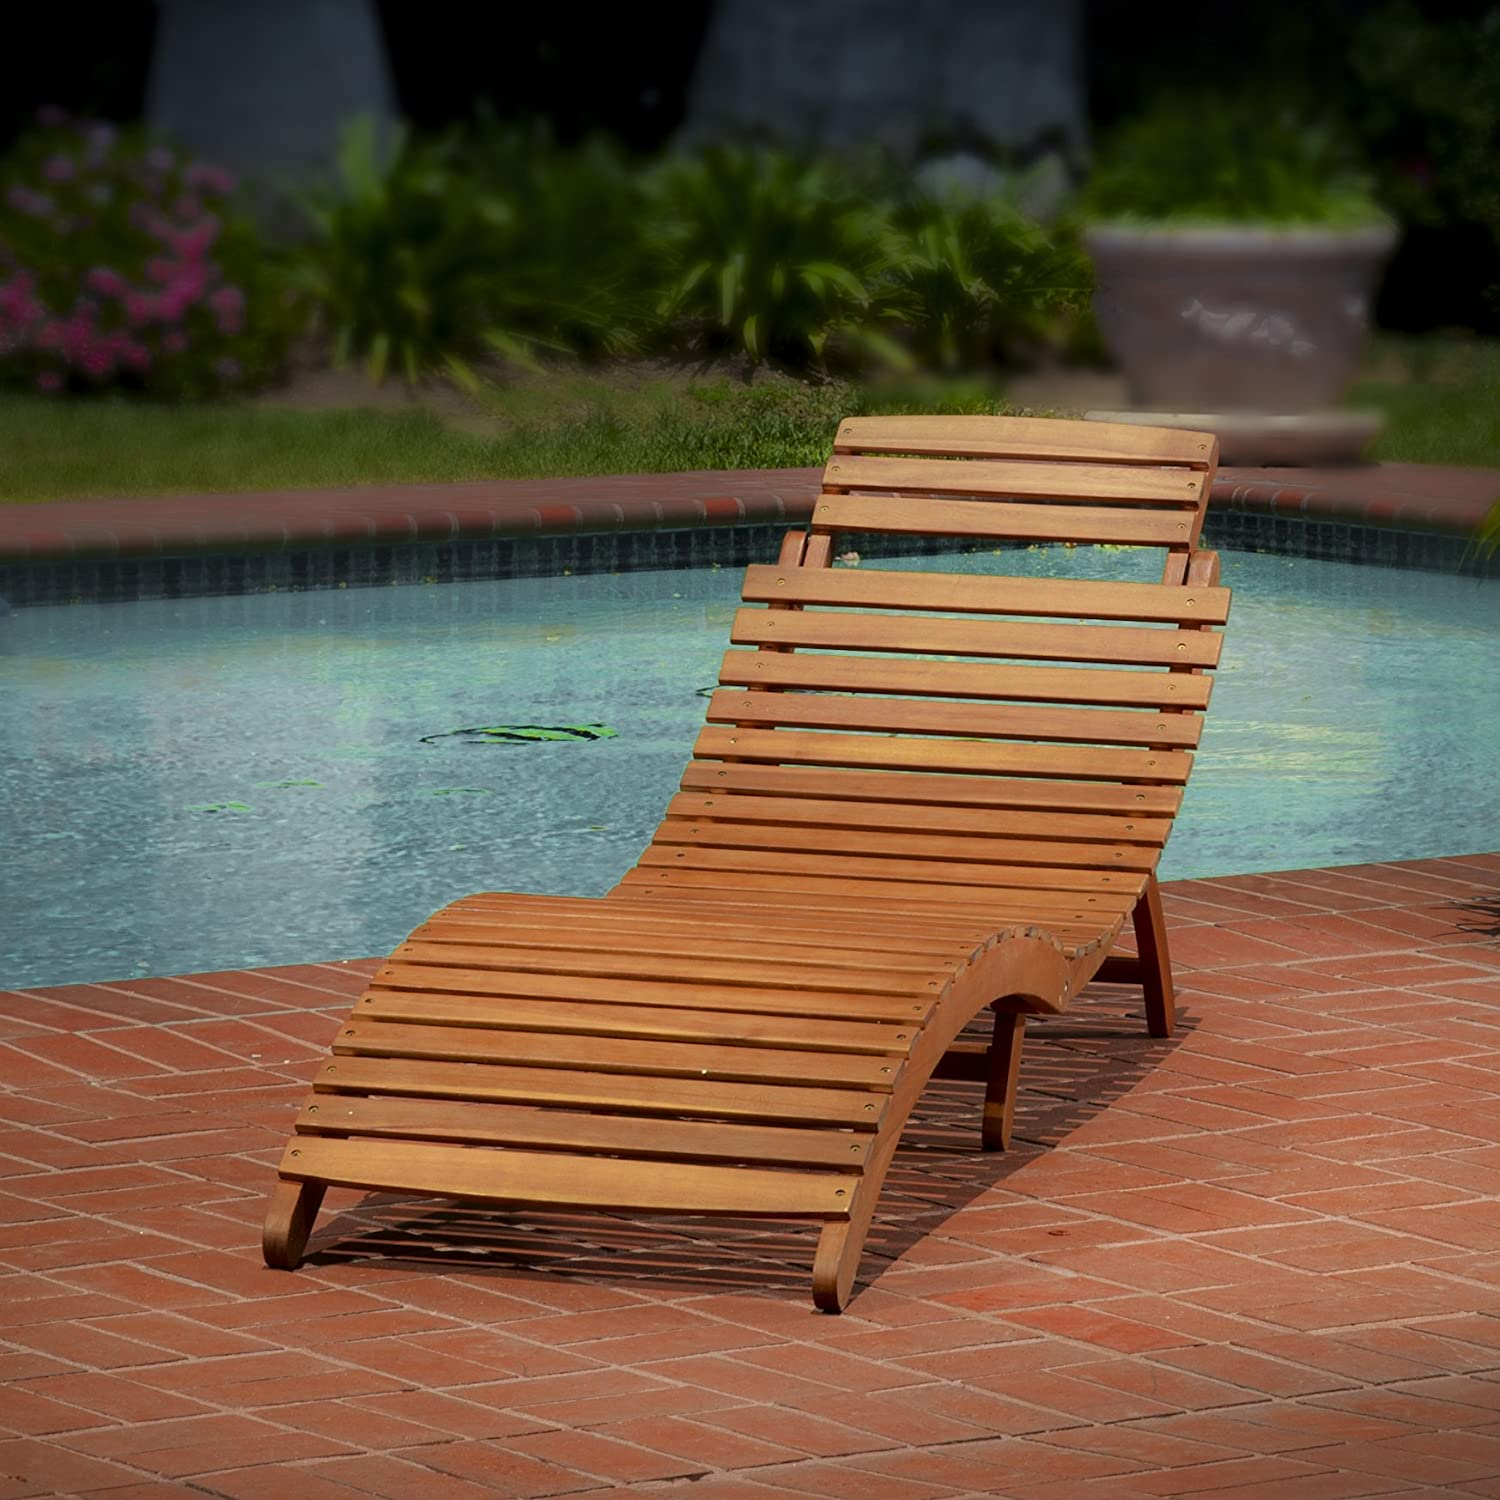 id outdoor chaise wooden from lounge chair wood made pallet patio large picture of